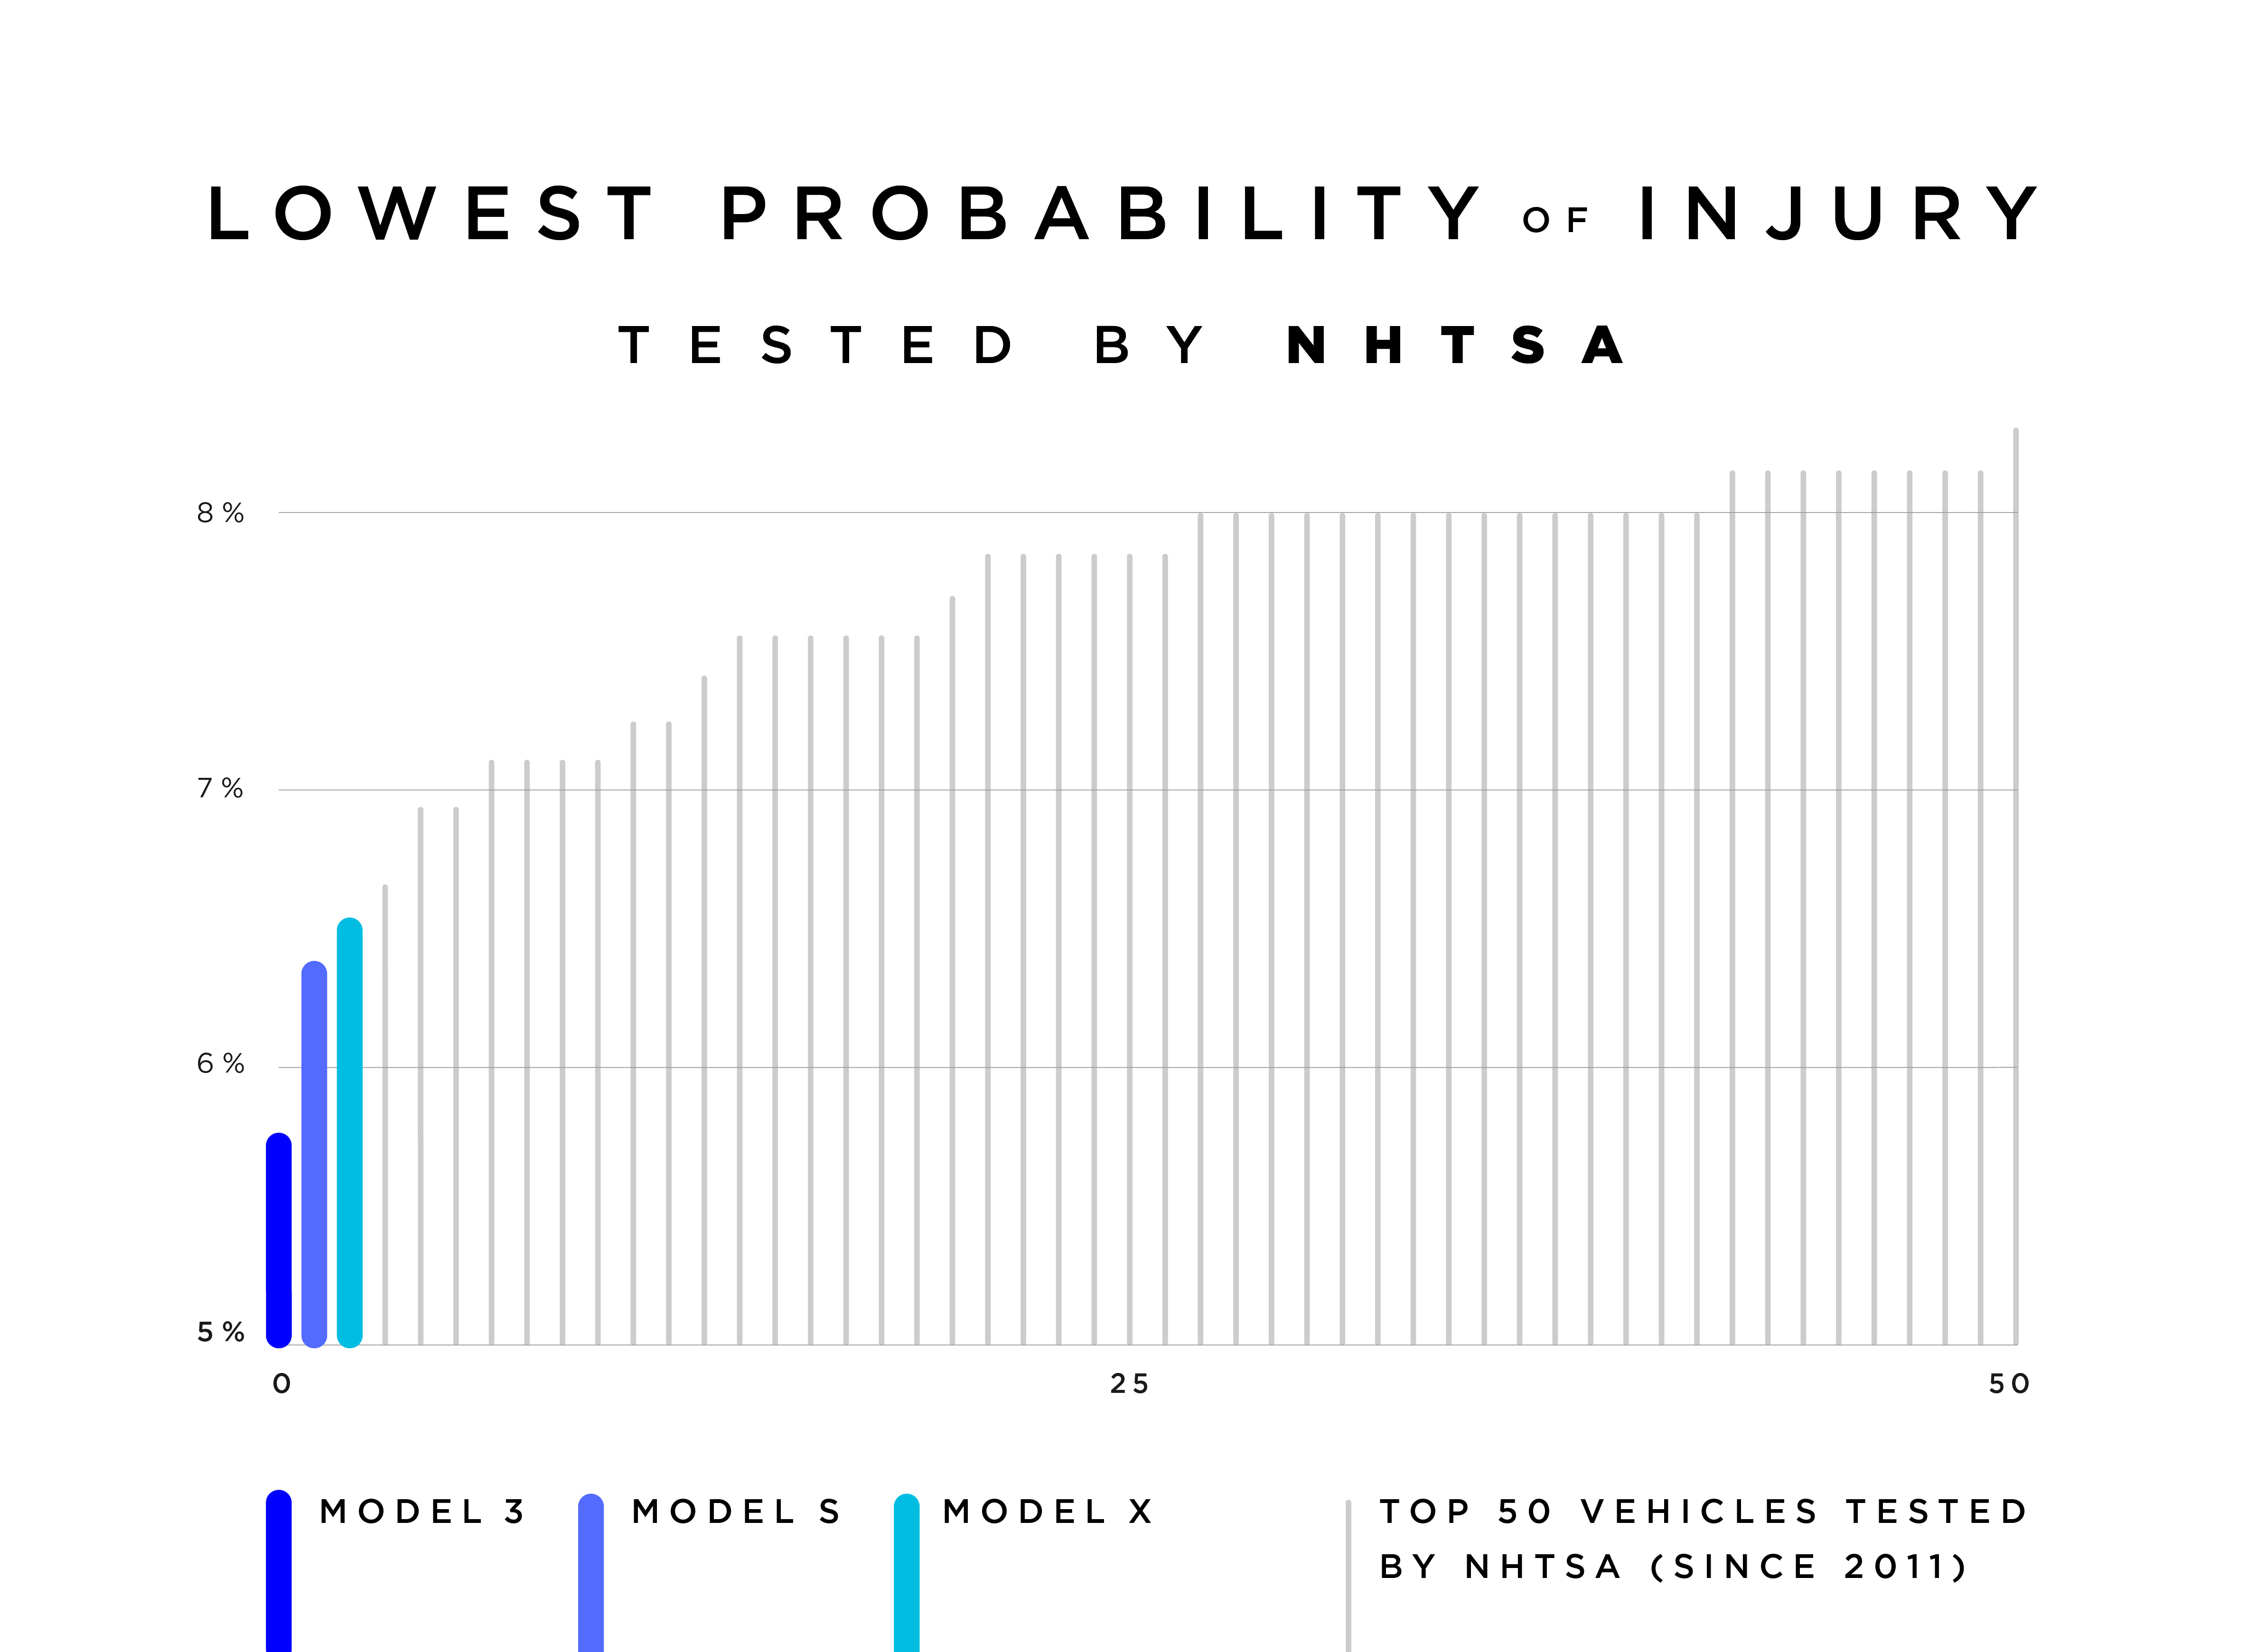 Graph: Lowest Probability of Injury of cars tested by NHTSA.